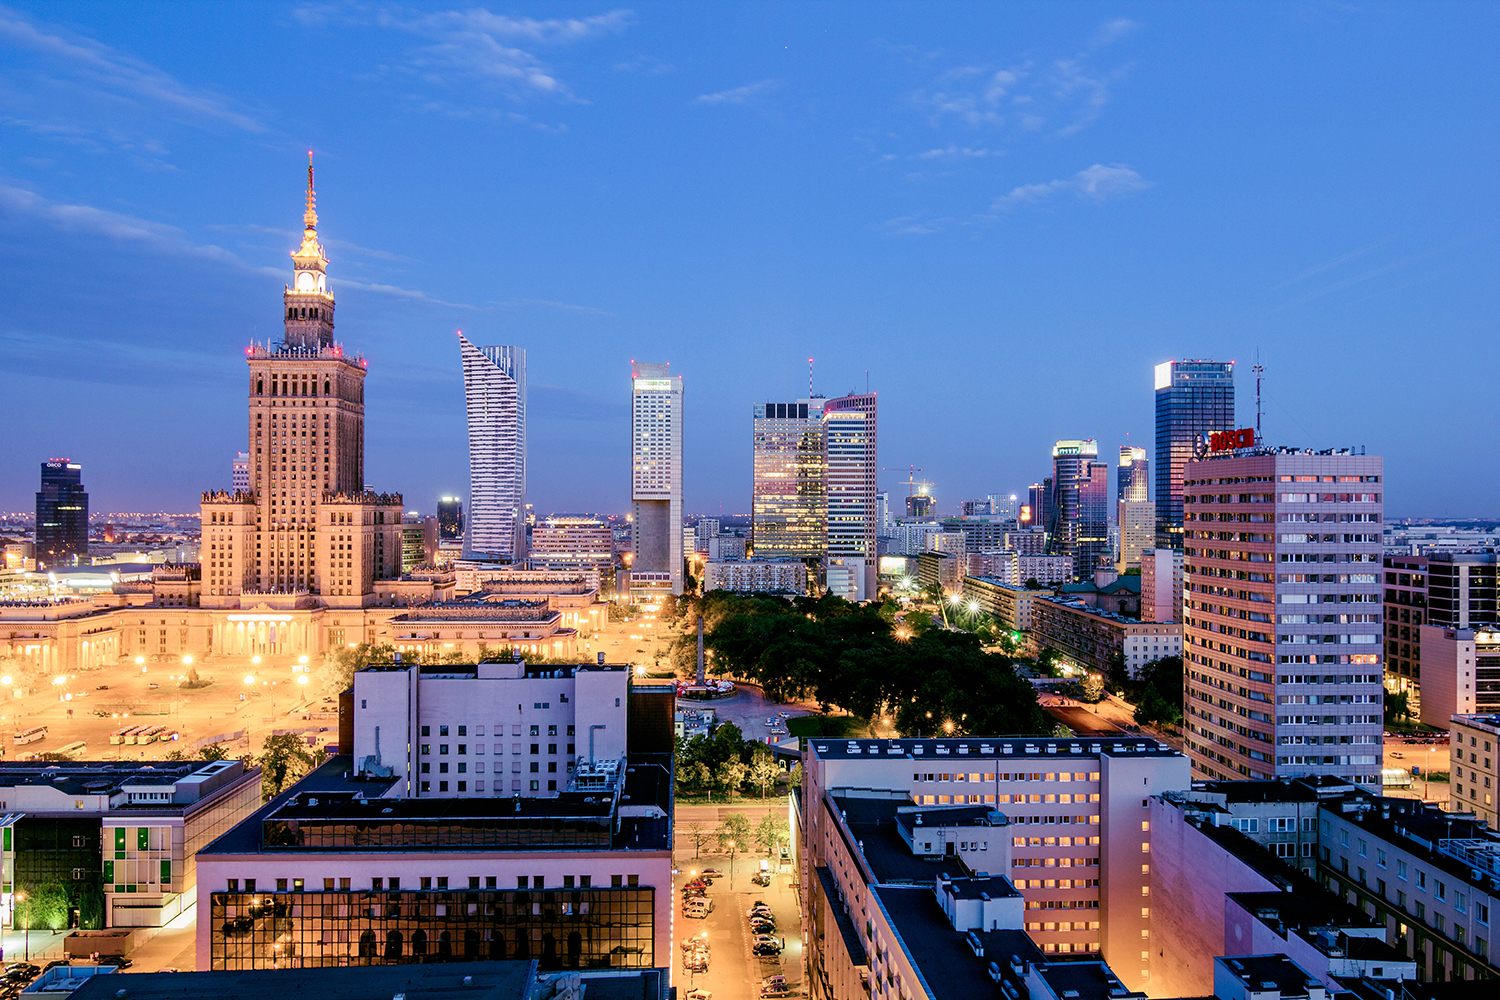 Warsaw - City in Poland - Thousand Wonders